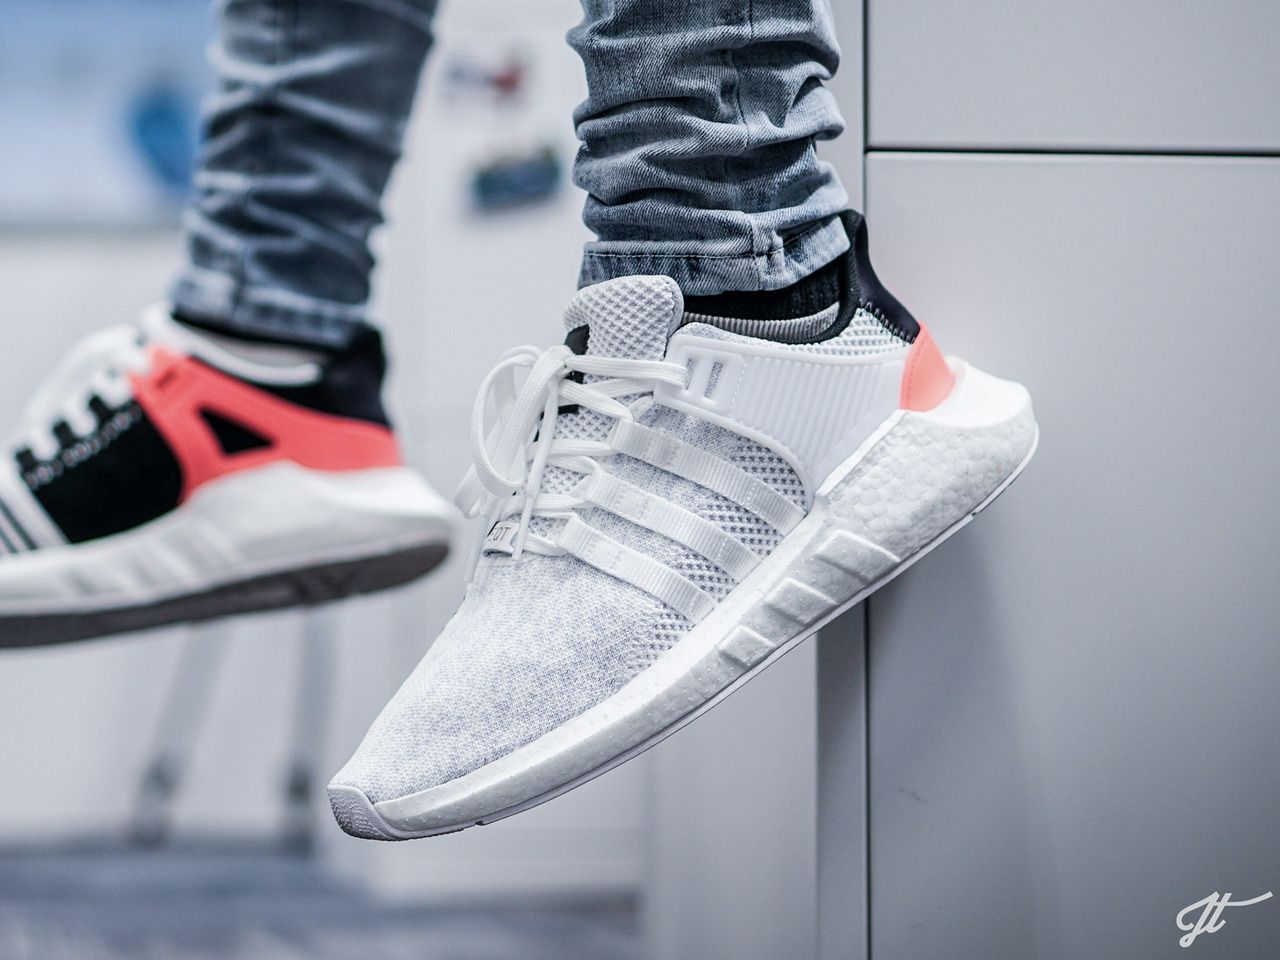 Free shoes · Adidas EQT Support Boost 93/17 - White/Turbo Red - 2017 (by